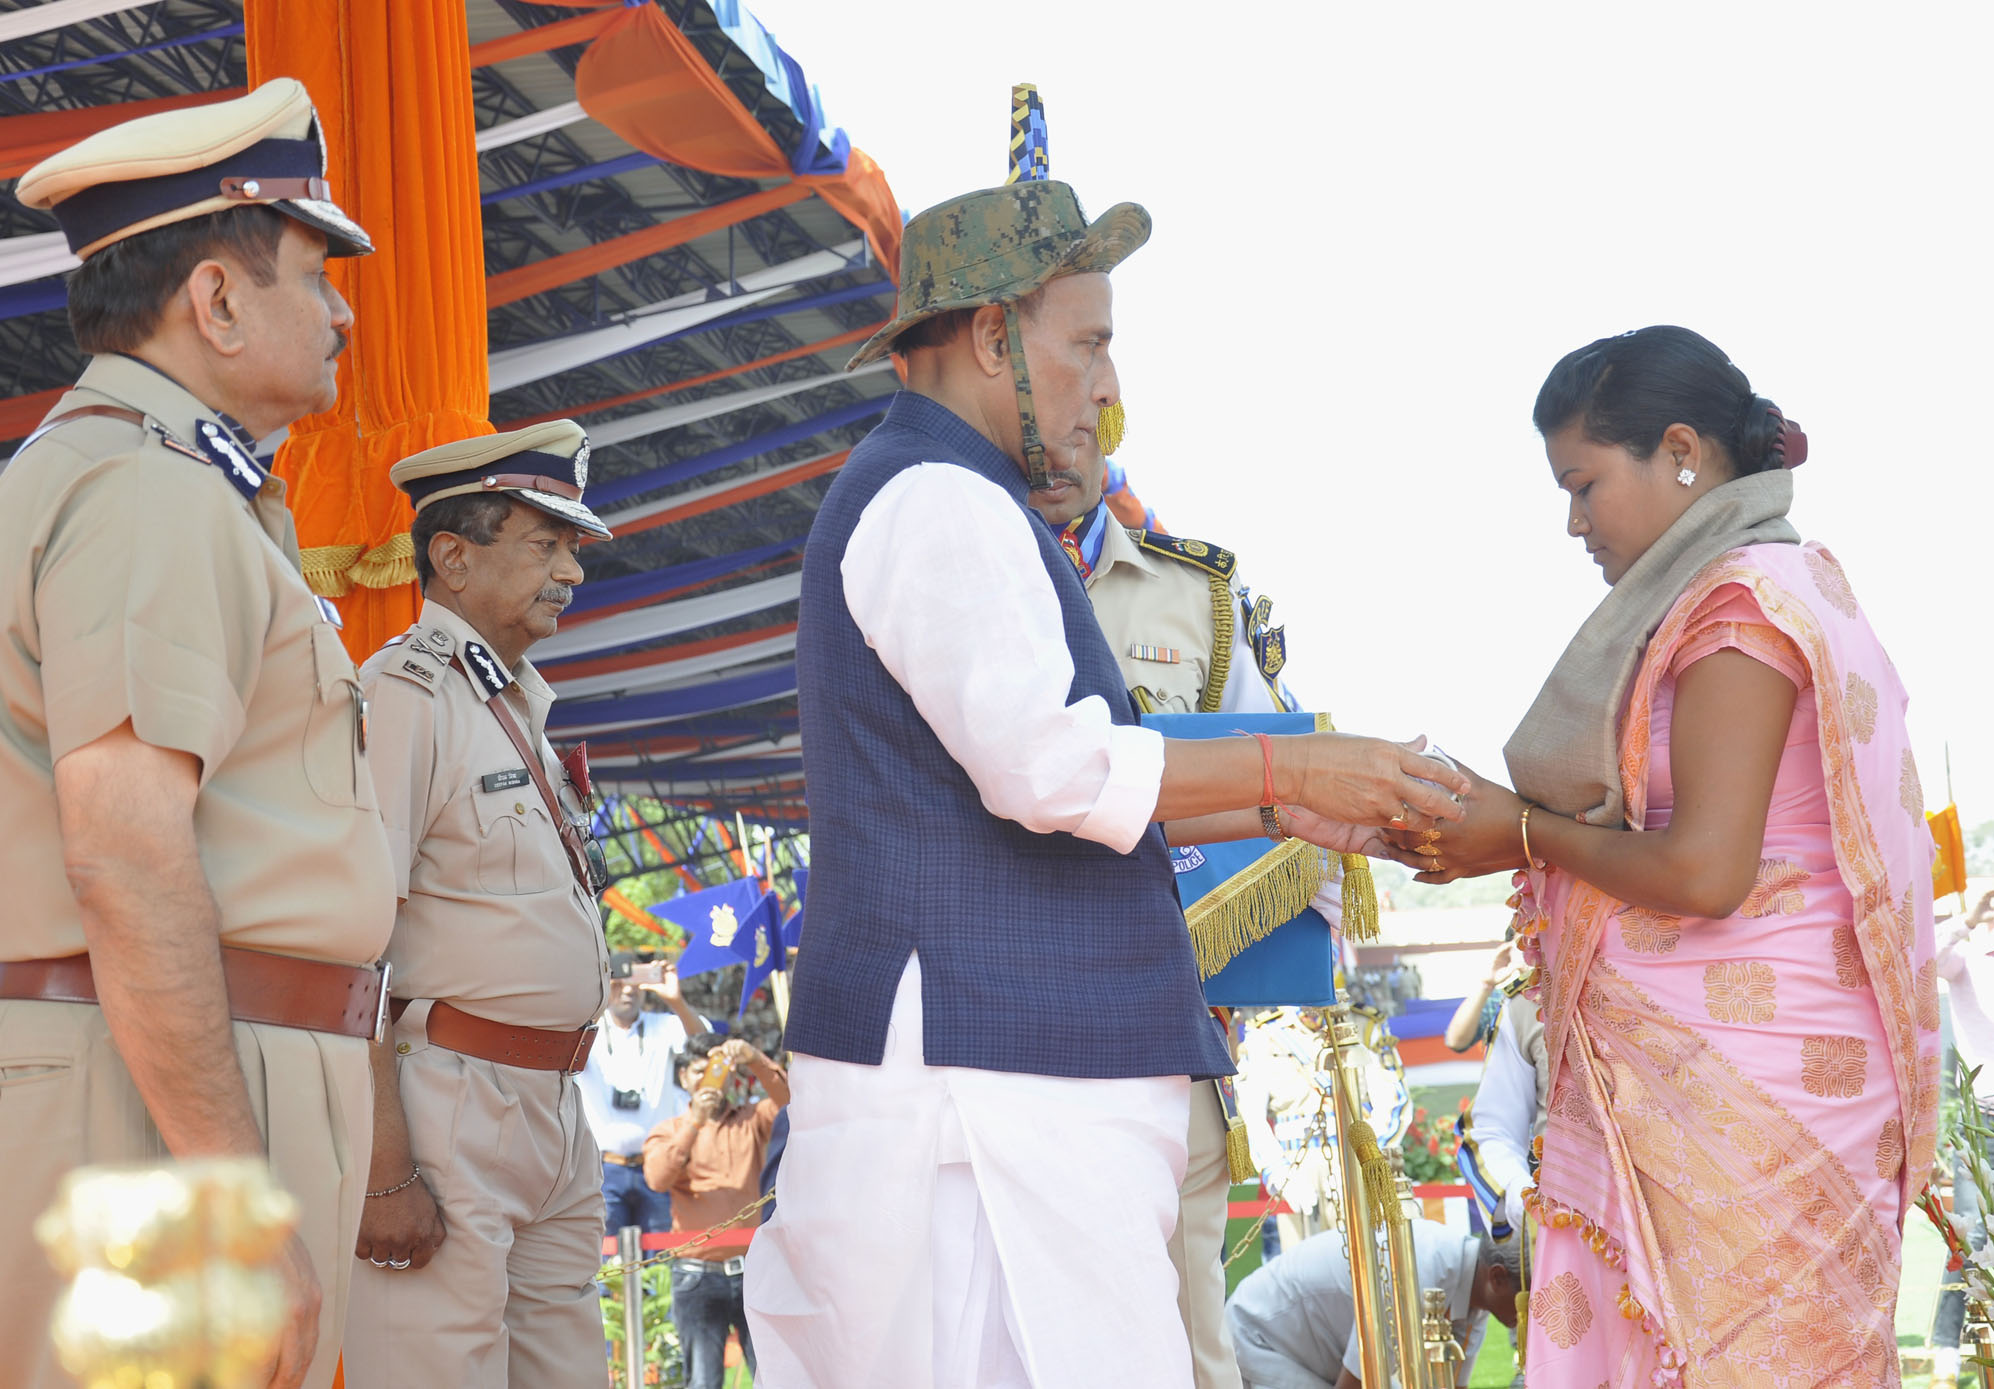 The Union Home Minister, Shri Rajnath Singh presenting Police Medals for Gallantry on the occasion of CRPF's 79th Raising Day Parade, in Gurugram, Haryana in March 24, 2018.